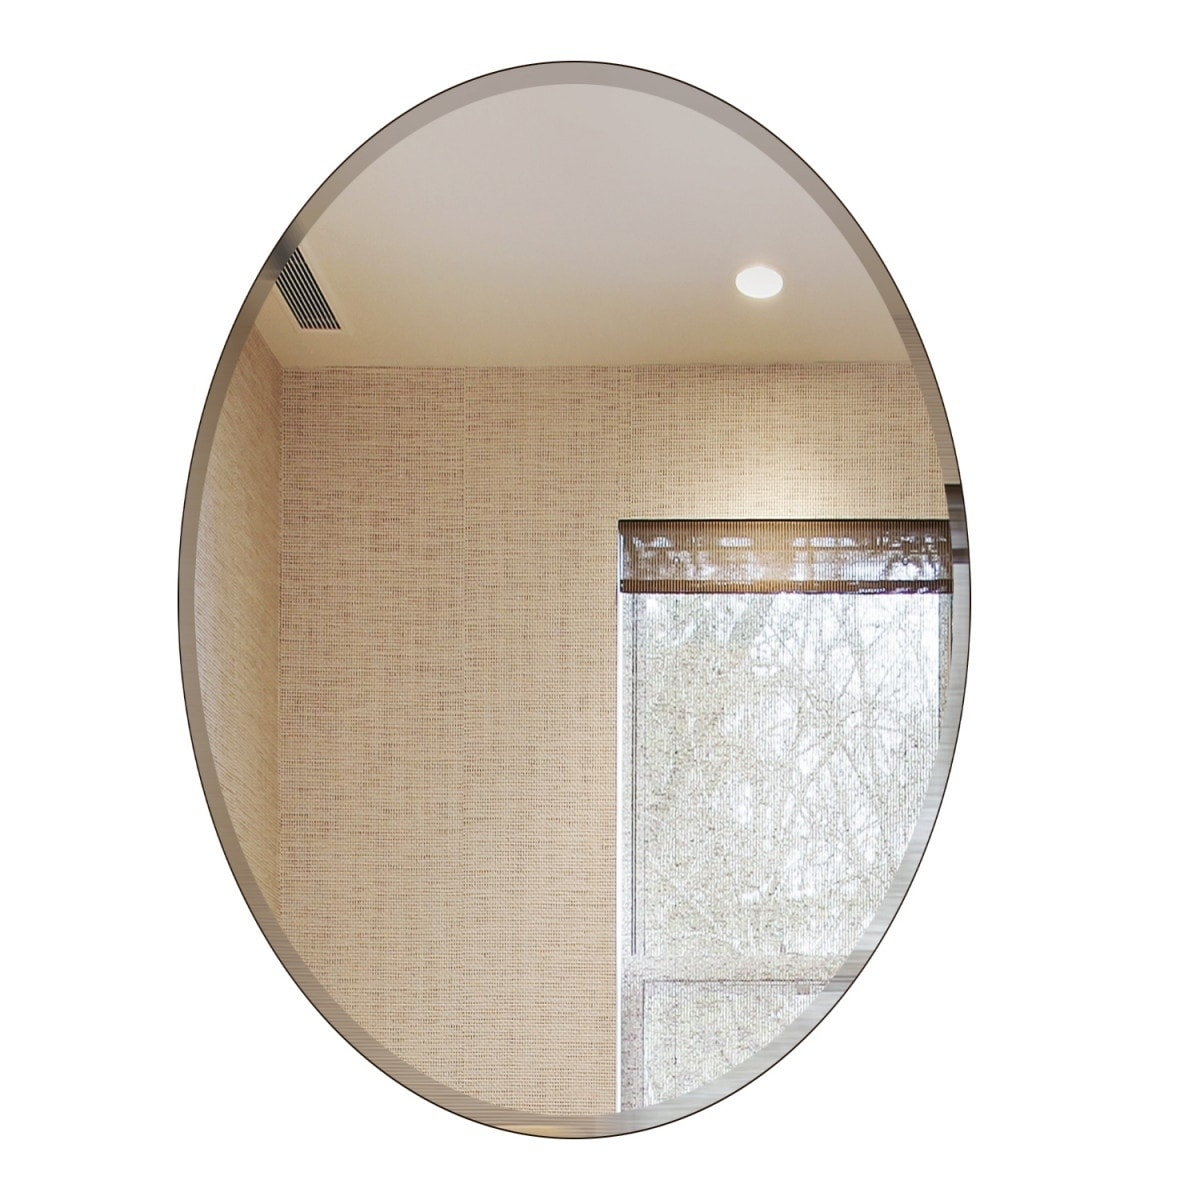 Frameless Mirror Canada Buy Frameless Mirrors Online At Overstock Our Best Decorative